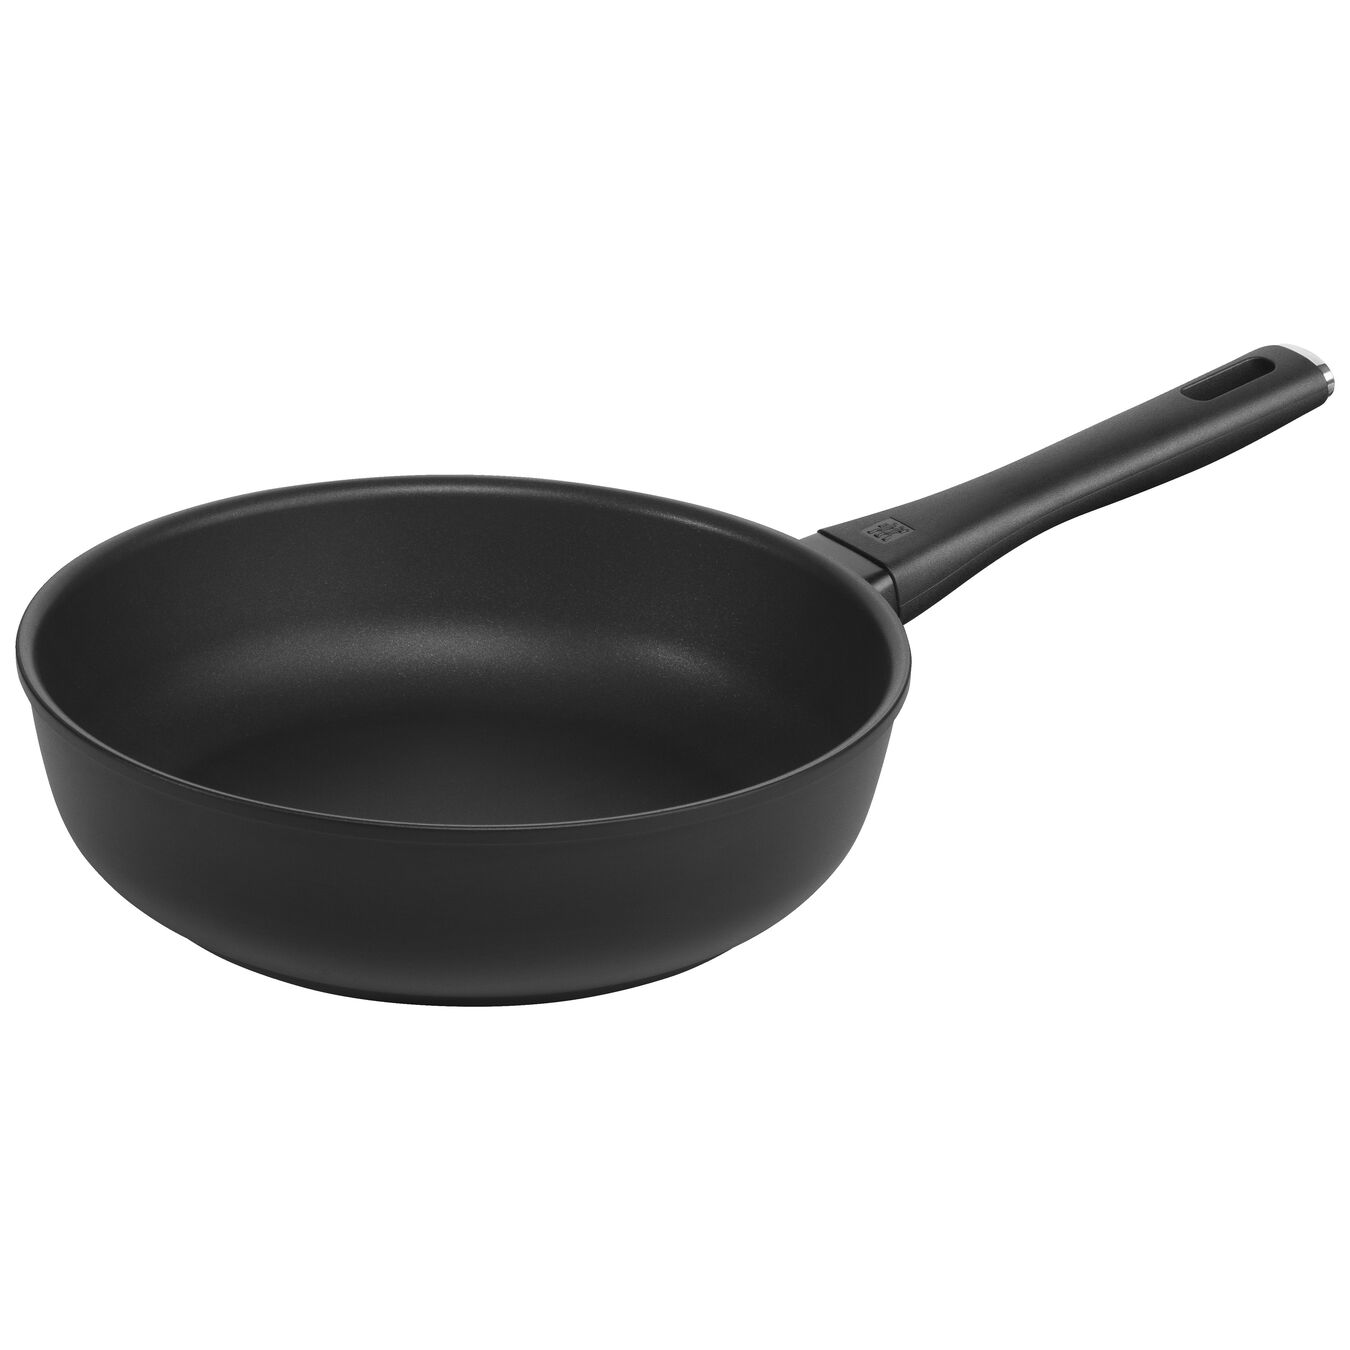 24 cm / 9.5 inch Frying pan high-sided,,large 1